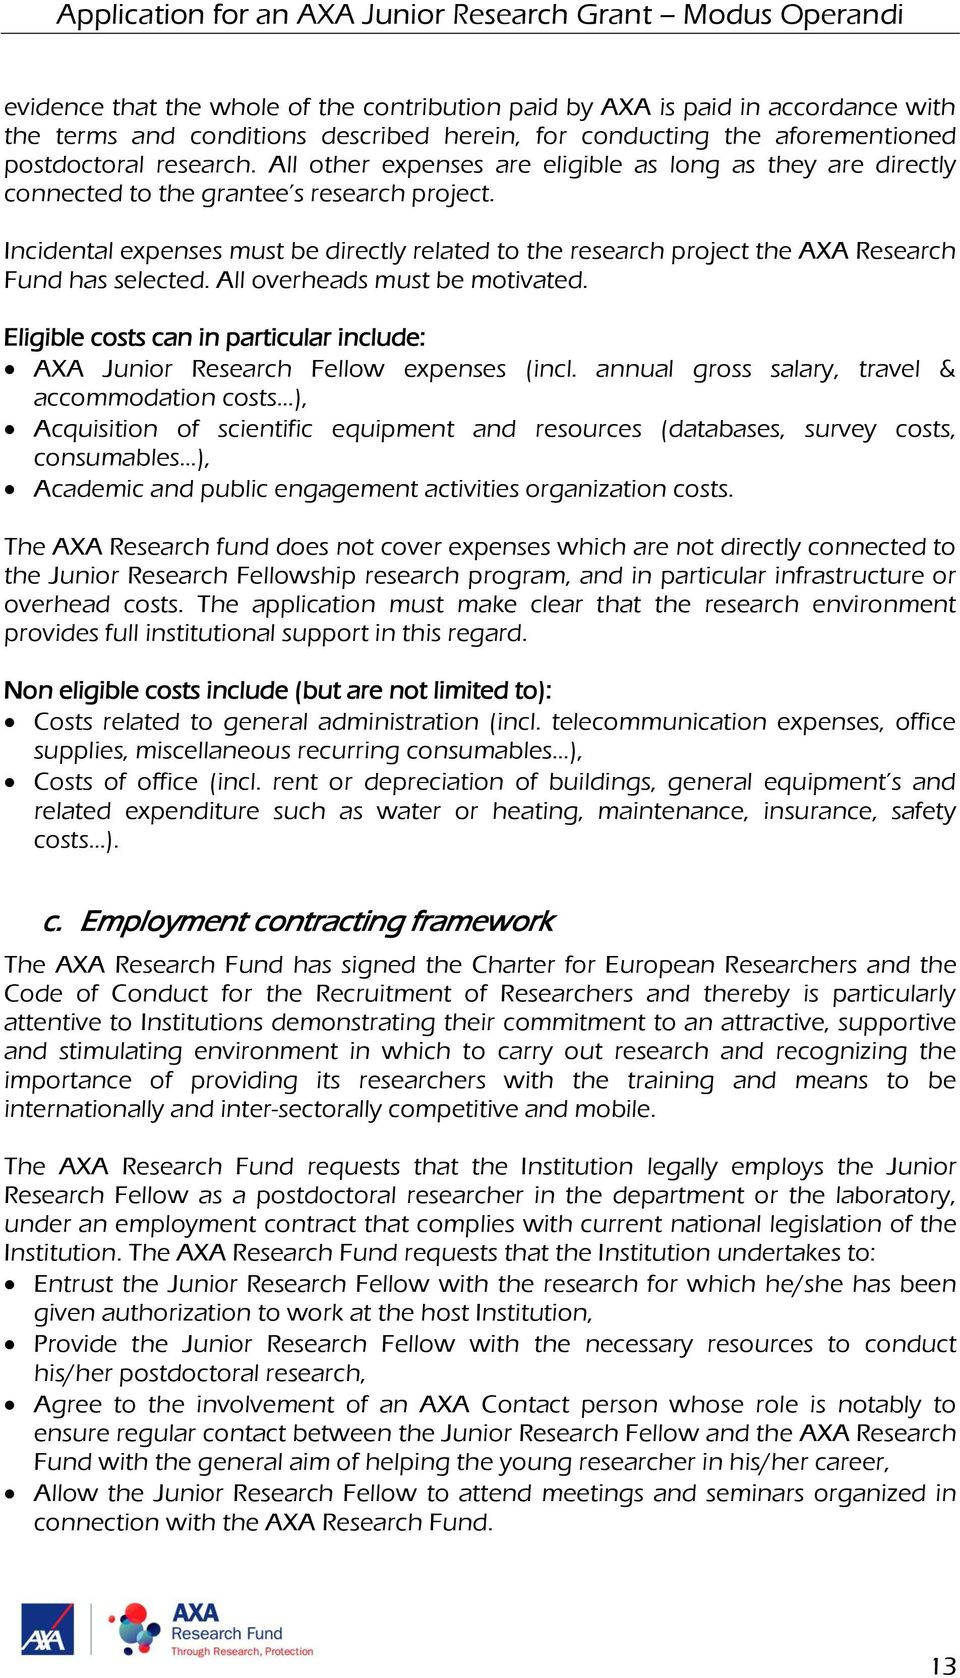 Incidental expenses must be directly related to the research project the AXA Research Fund has selected. All overheads must be motivated.